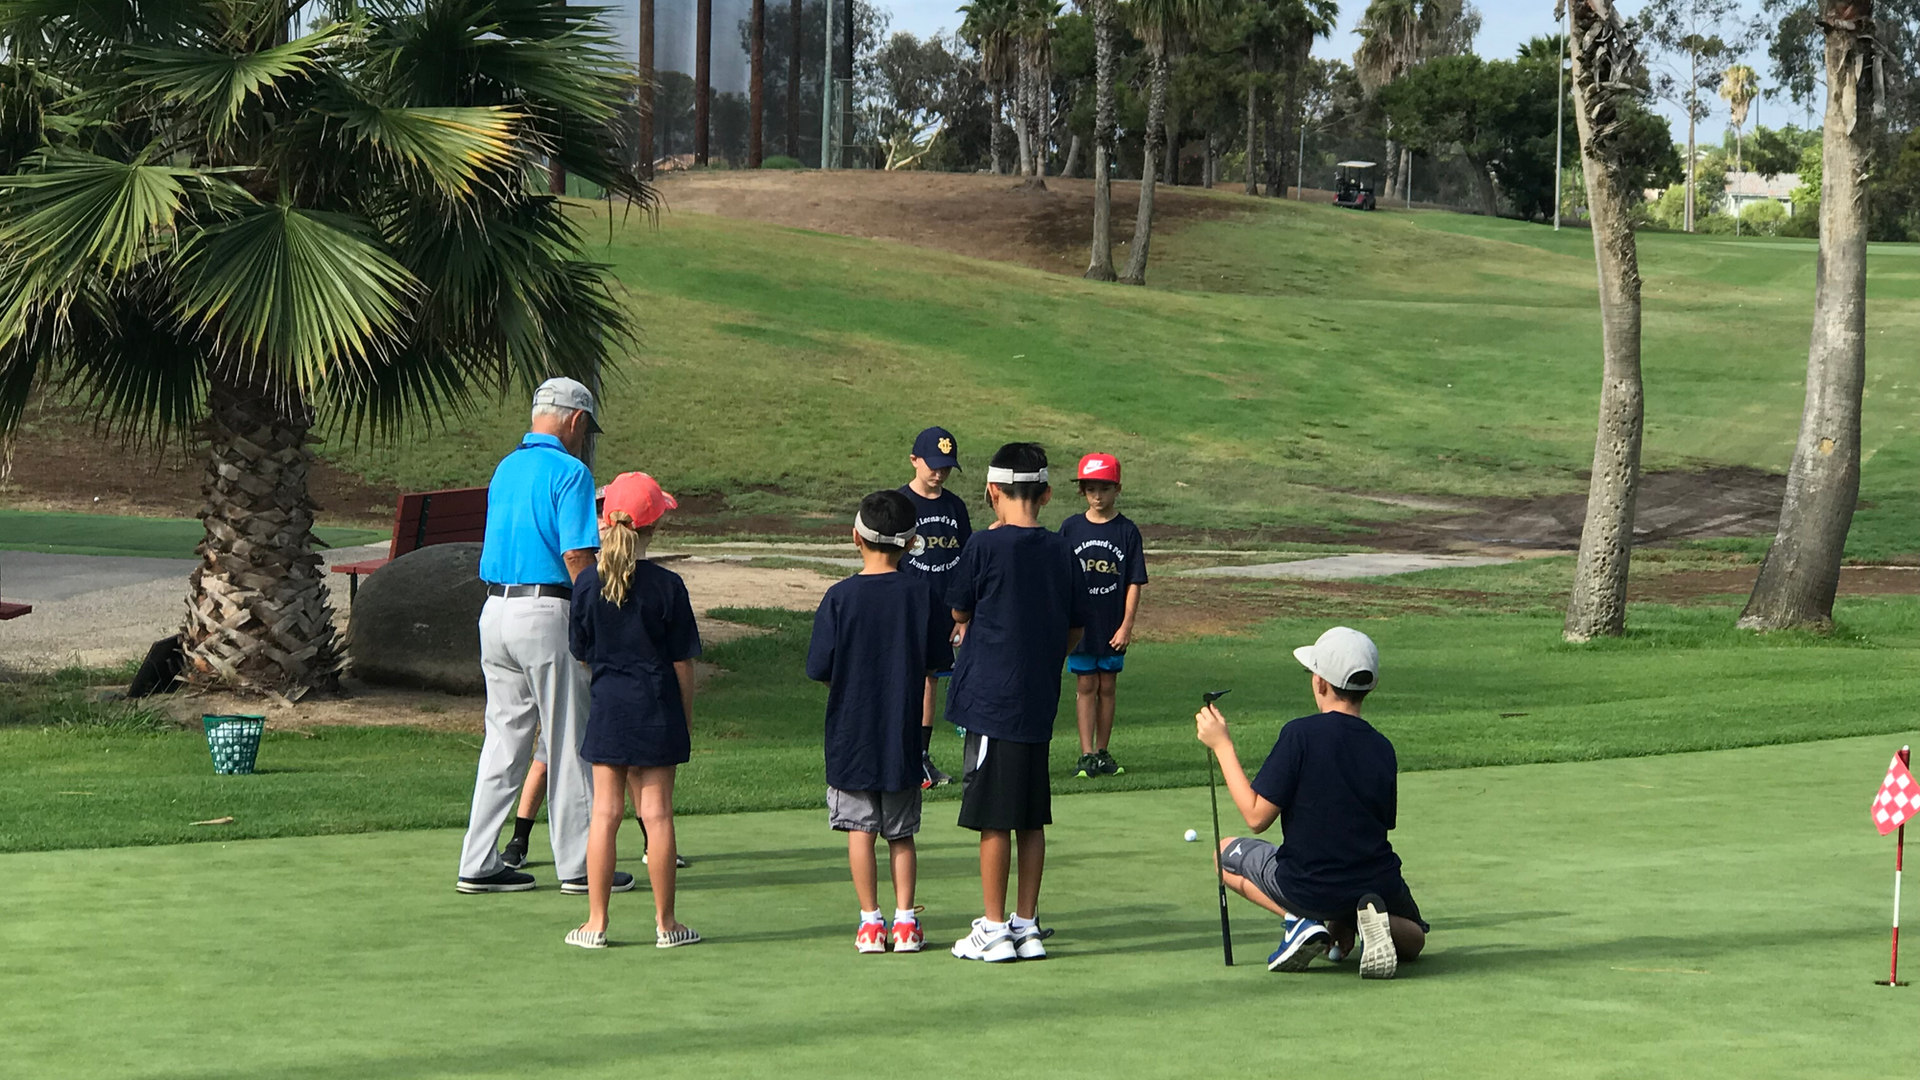 affordable-golf-lessons-in-newport-beach-irvine-costa-mesa-ca